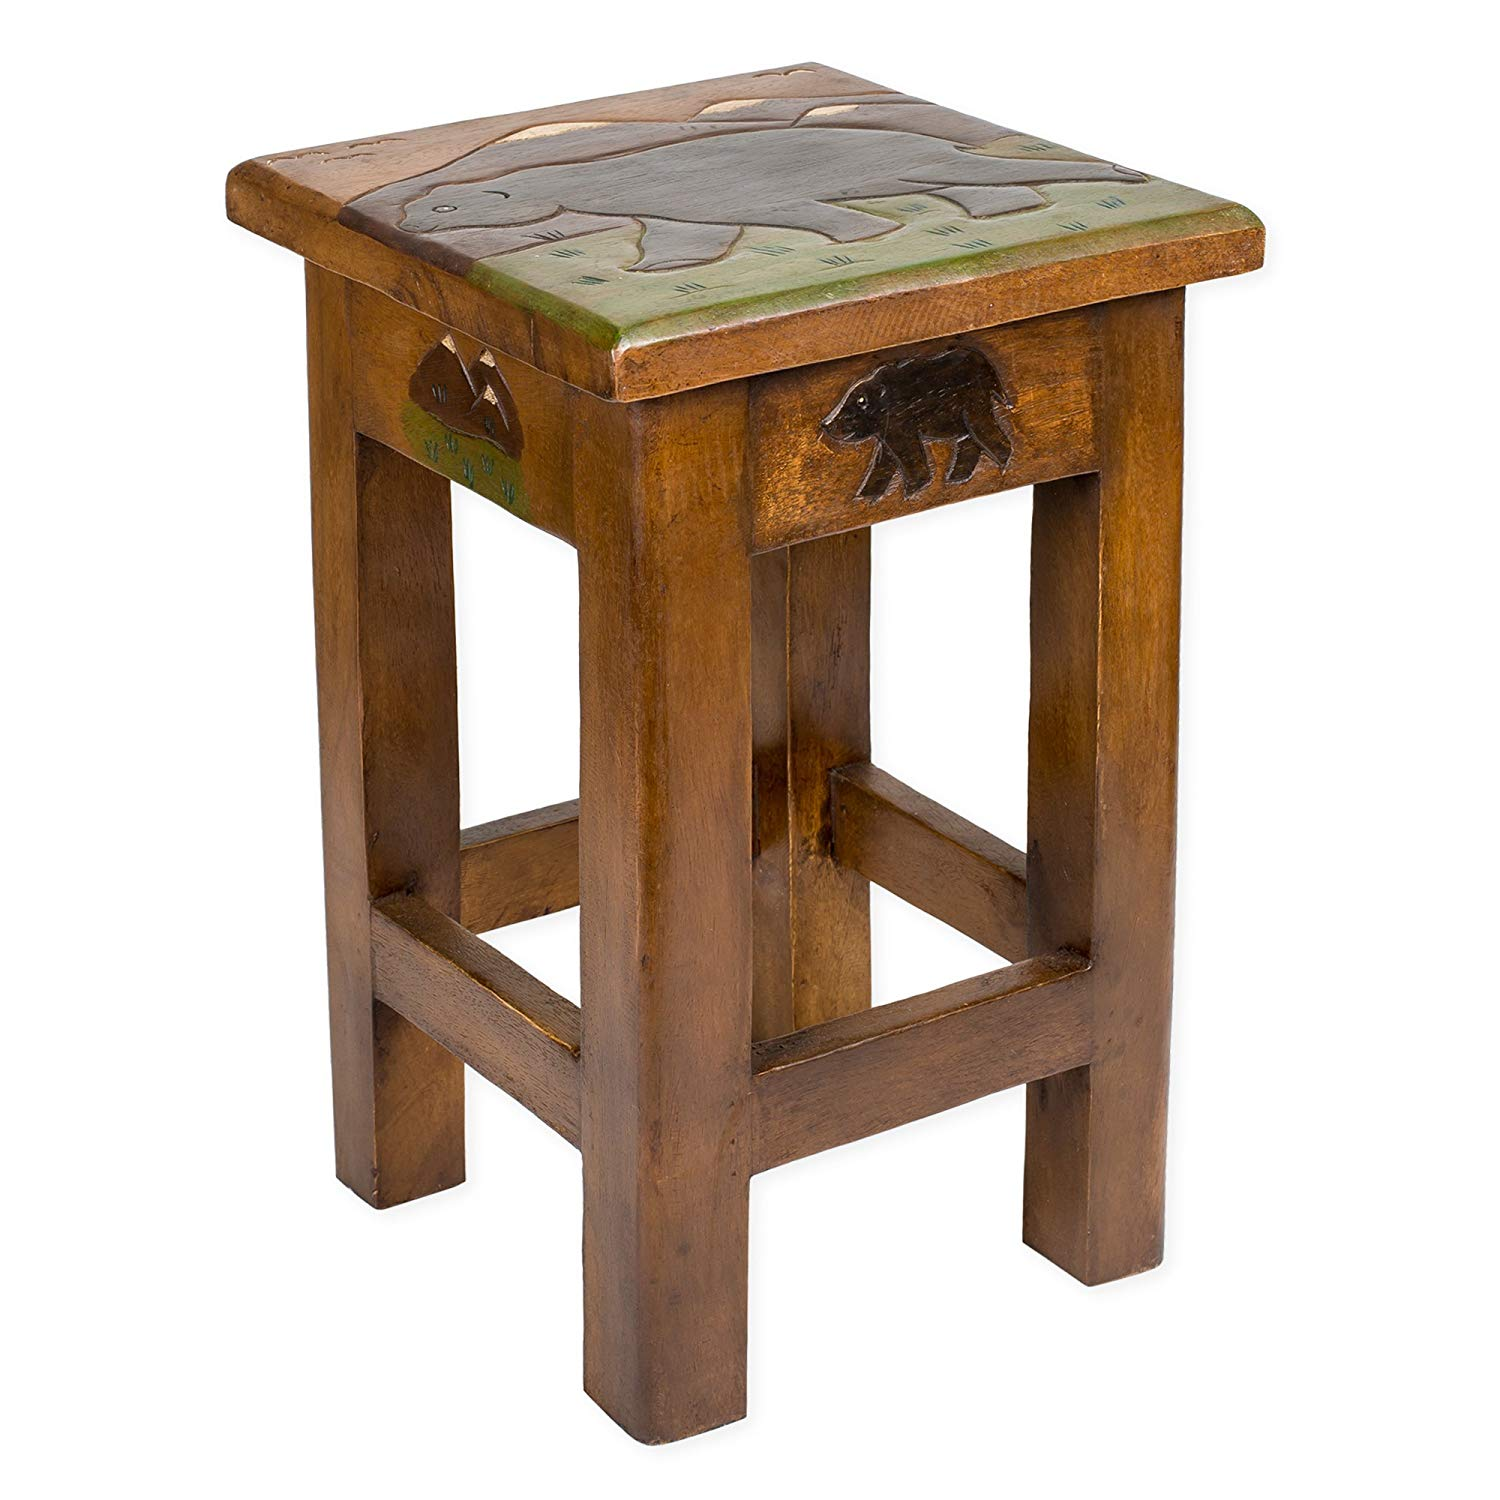 bear carved acacia hardwood inch end table kitchen black tables dining lounge cushions diy dog furniture vintage stickley antigo chair unfinished wood side miami dolphins magnolia